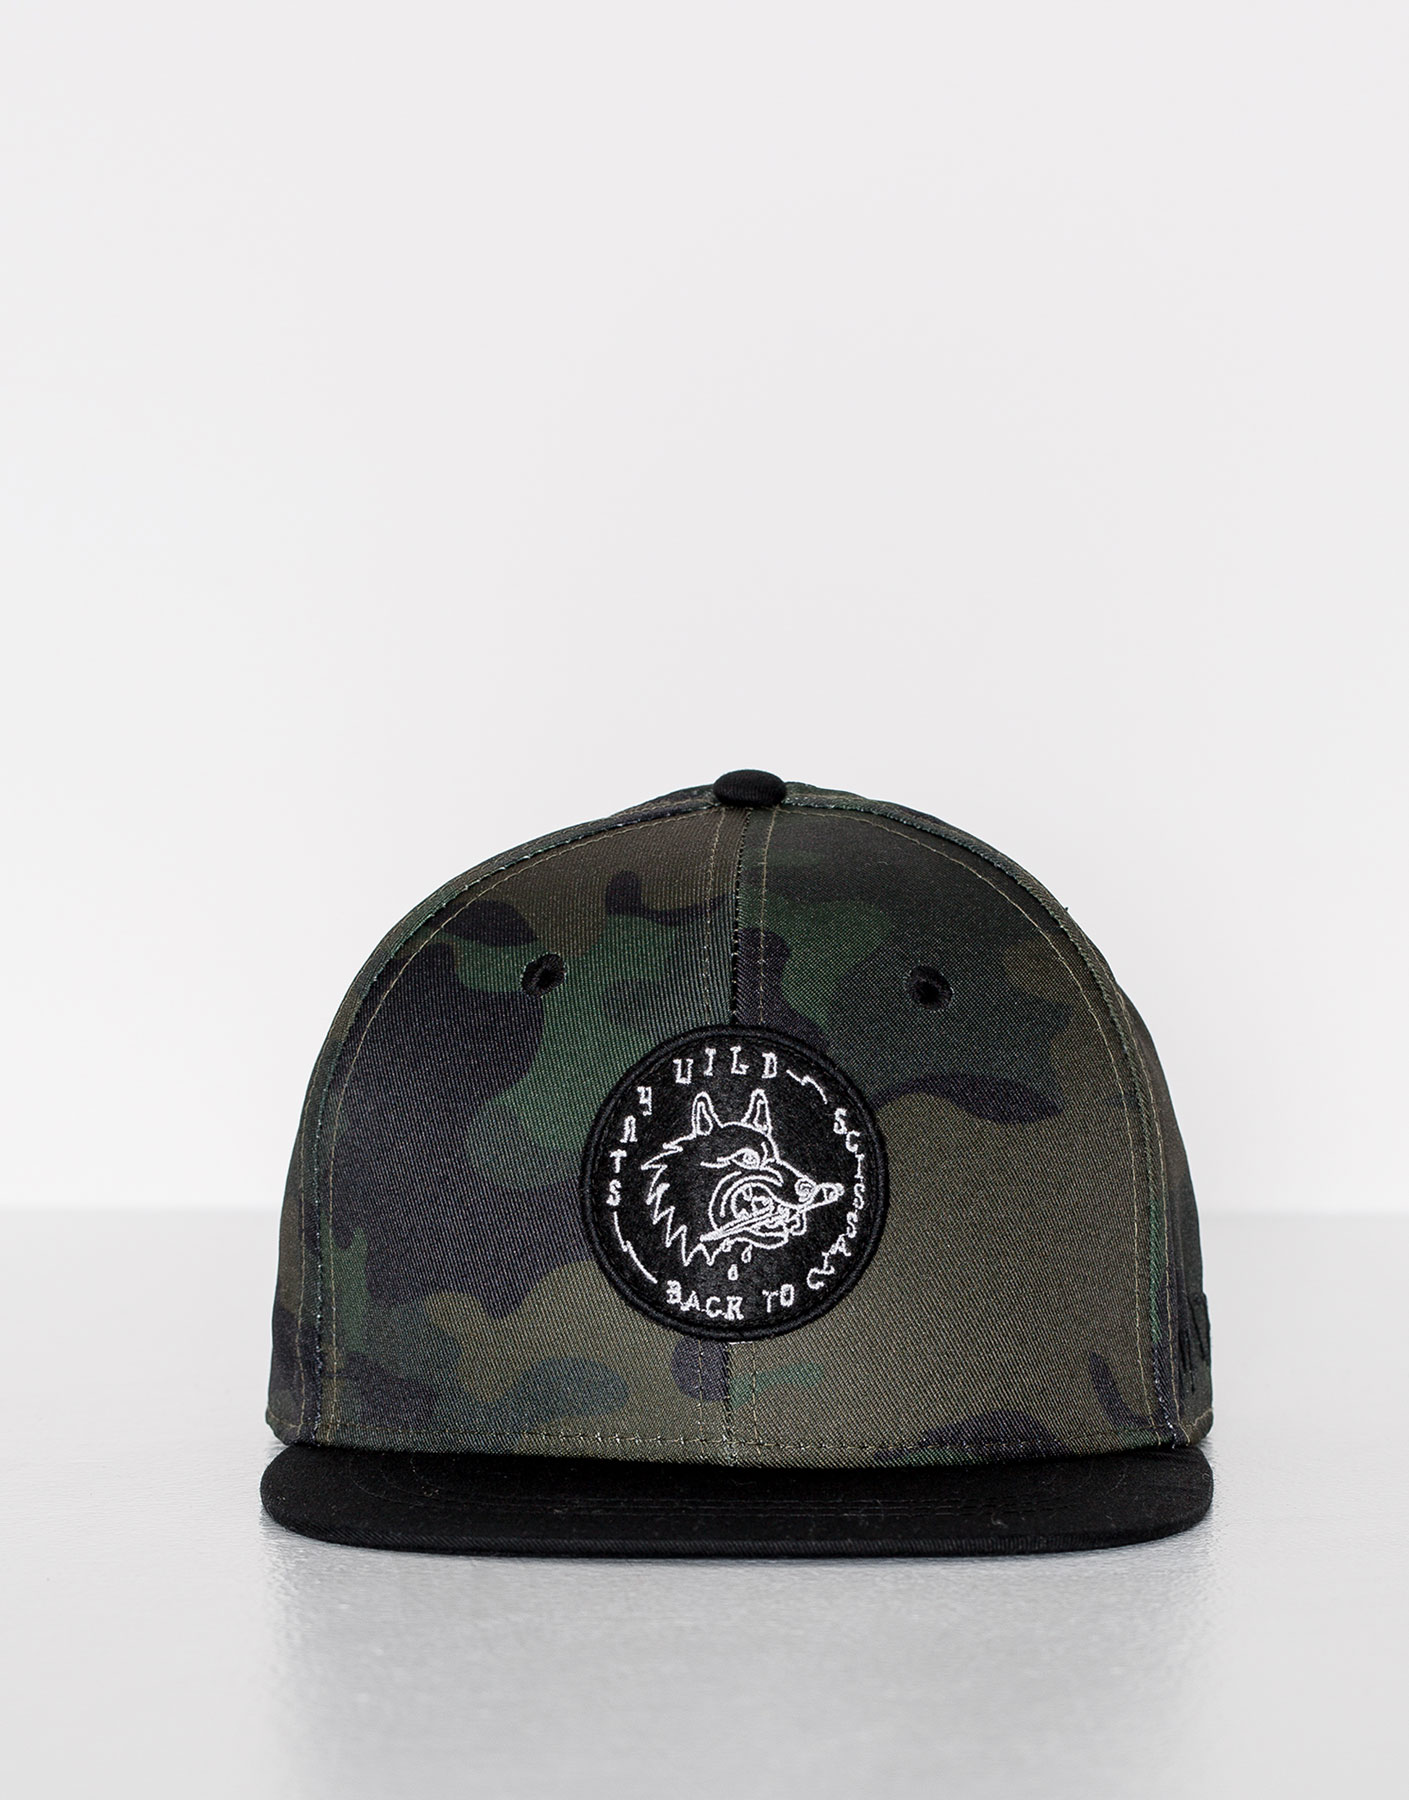 Camouflage cap with a patch